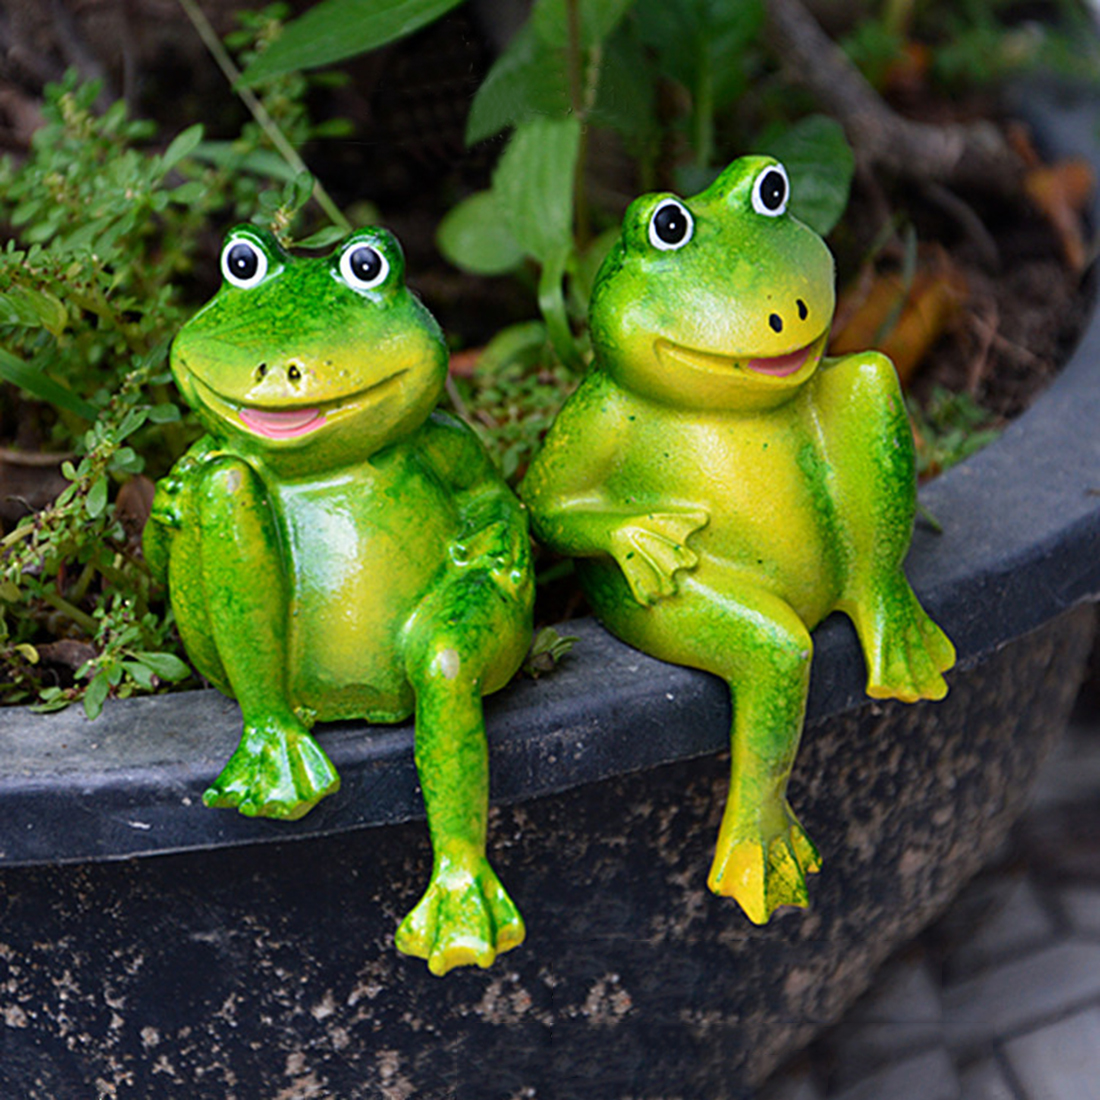 US $9.9 9% OFF9Pair Cute Resin Sitting Frogs Statue Garden Decorative  Frogs Sculpture For Home Desk Garden Decor New Small Spotted FrogsGarden